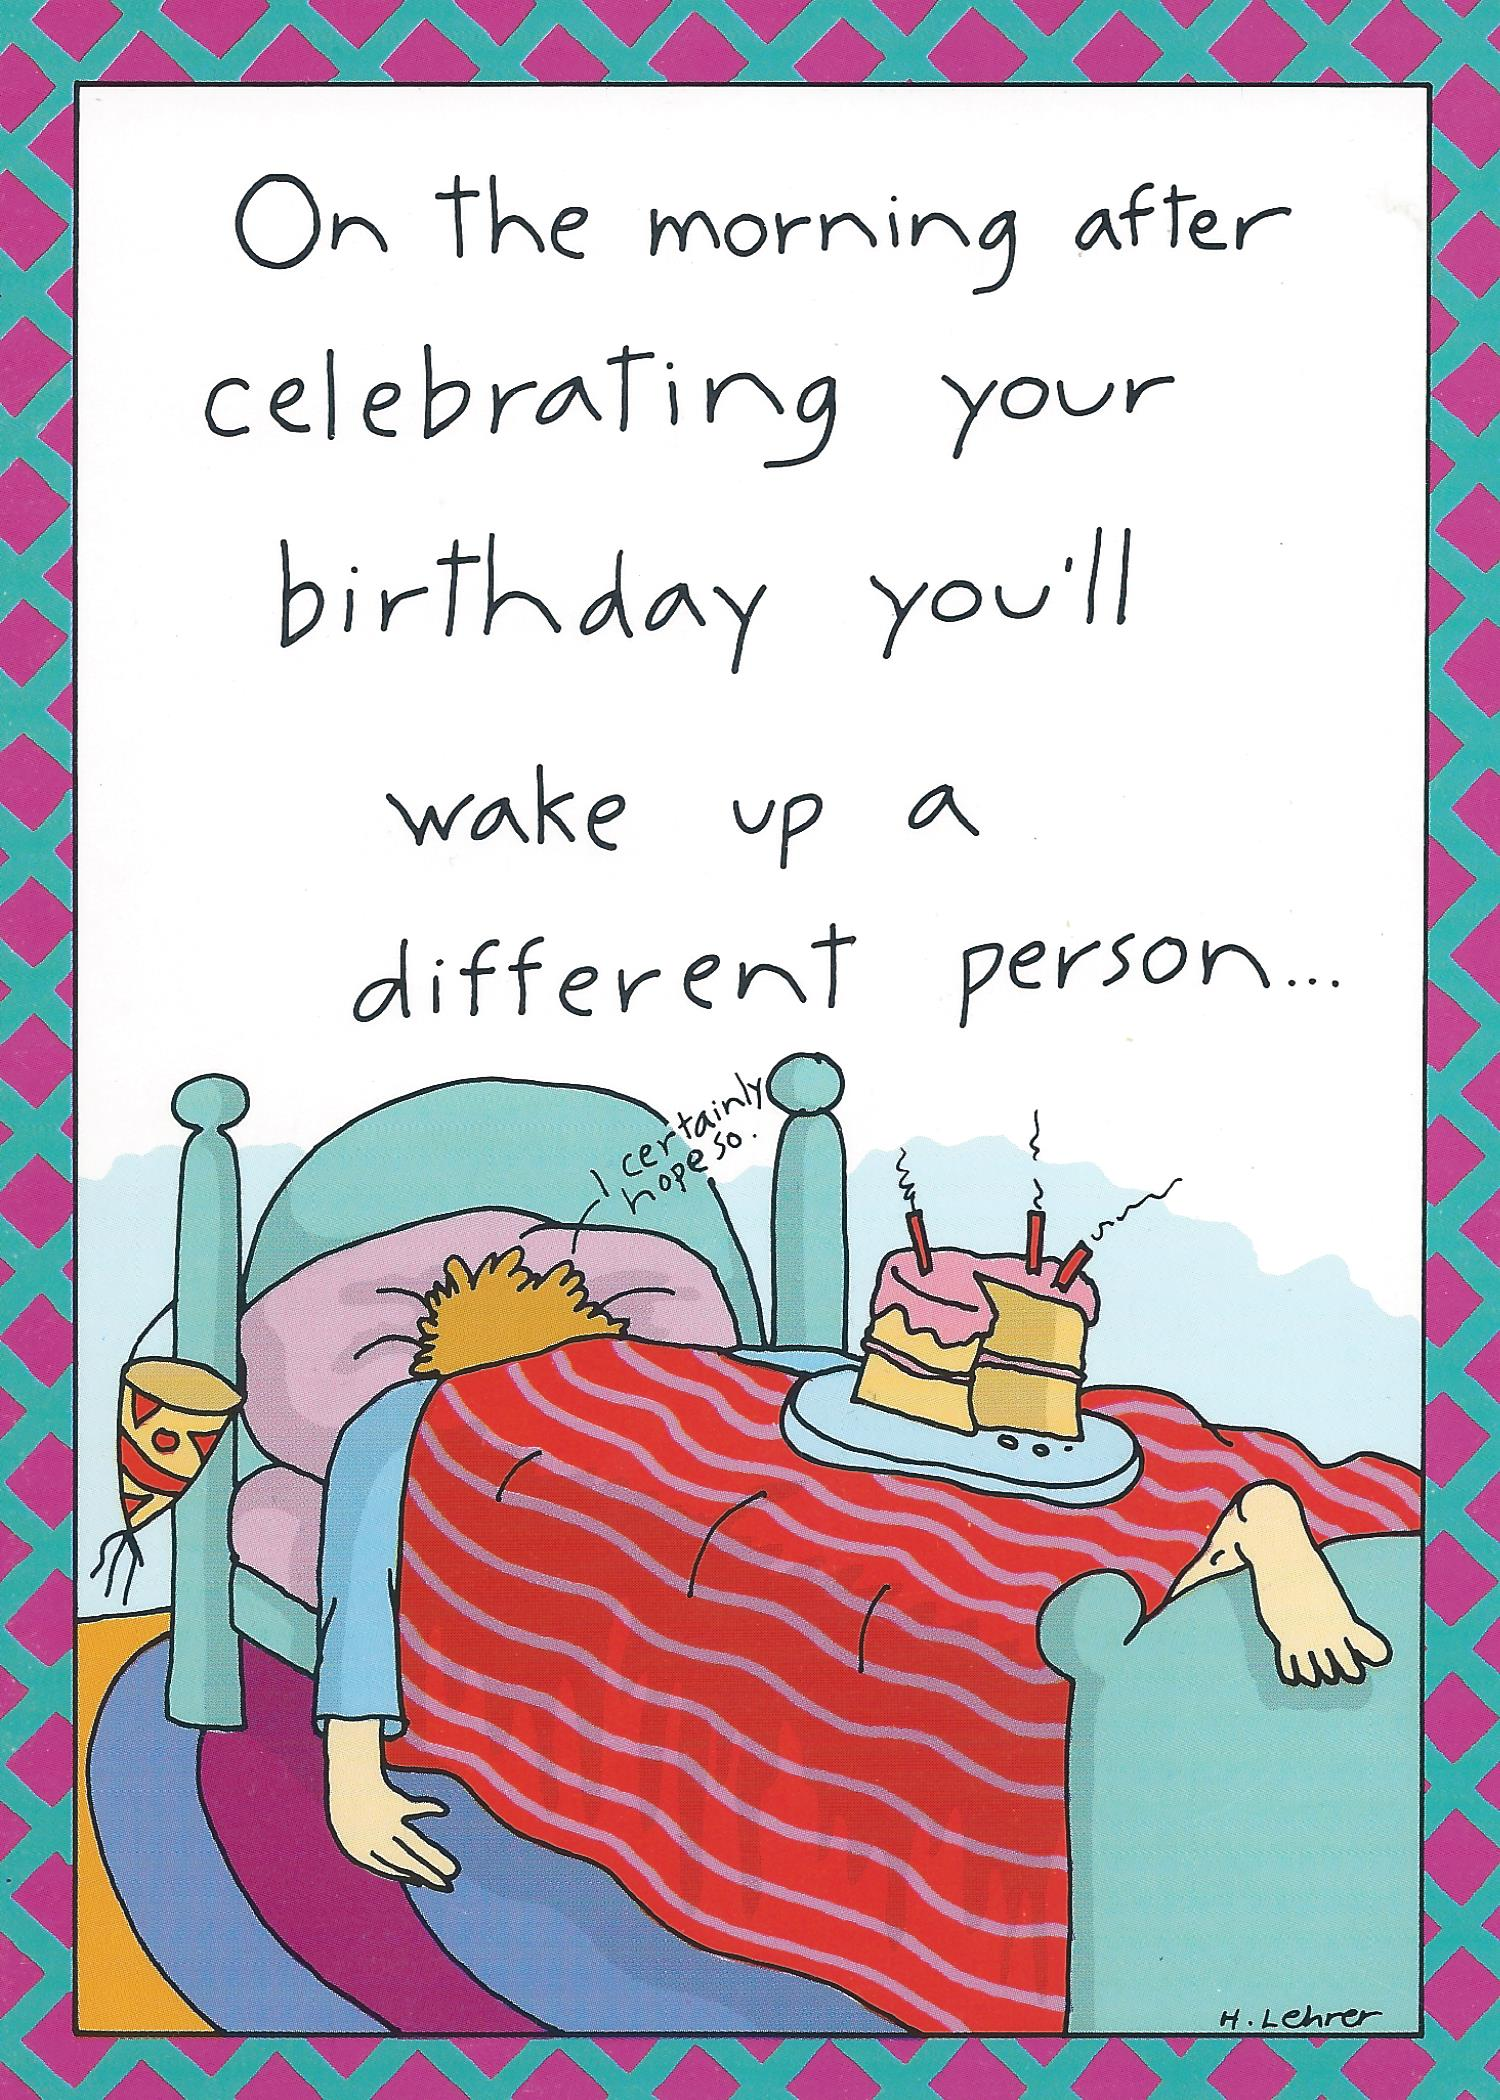 On the morning after celebrating your birthday you'll wake up a different person...